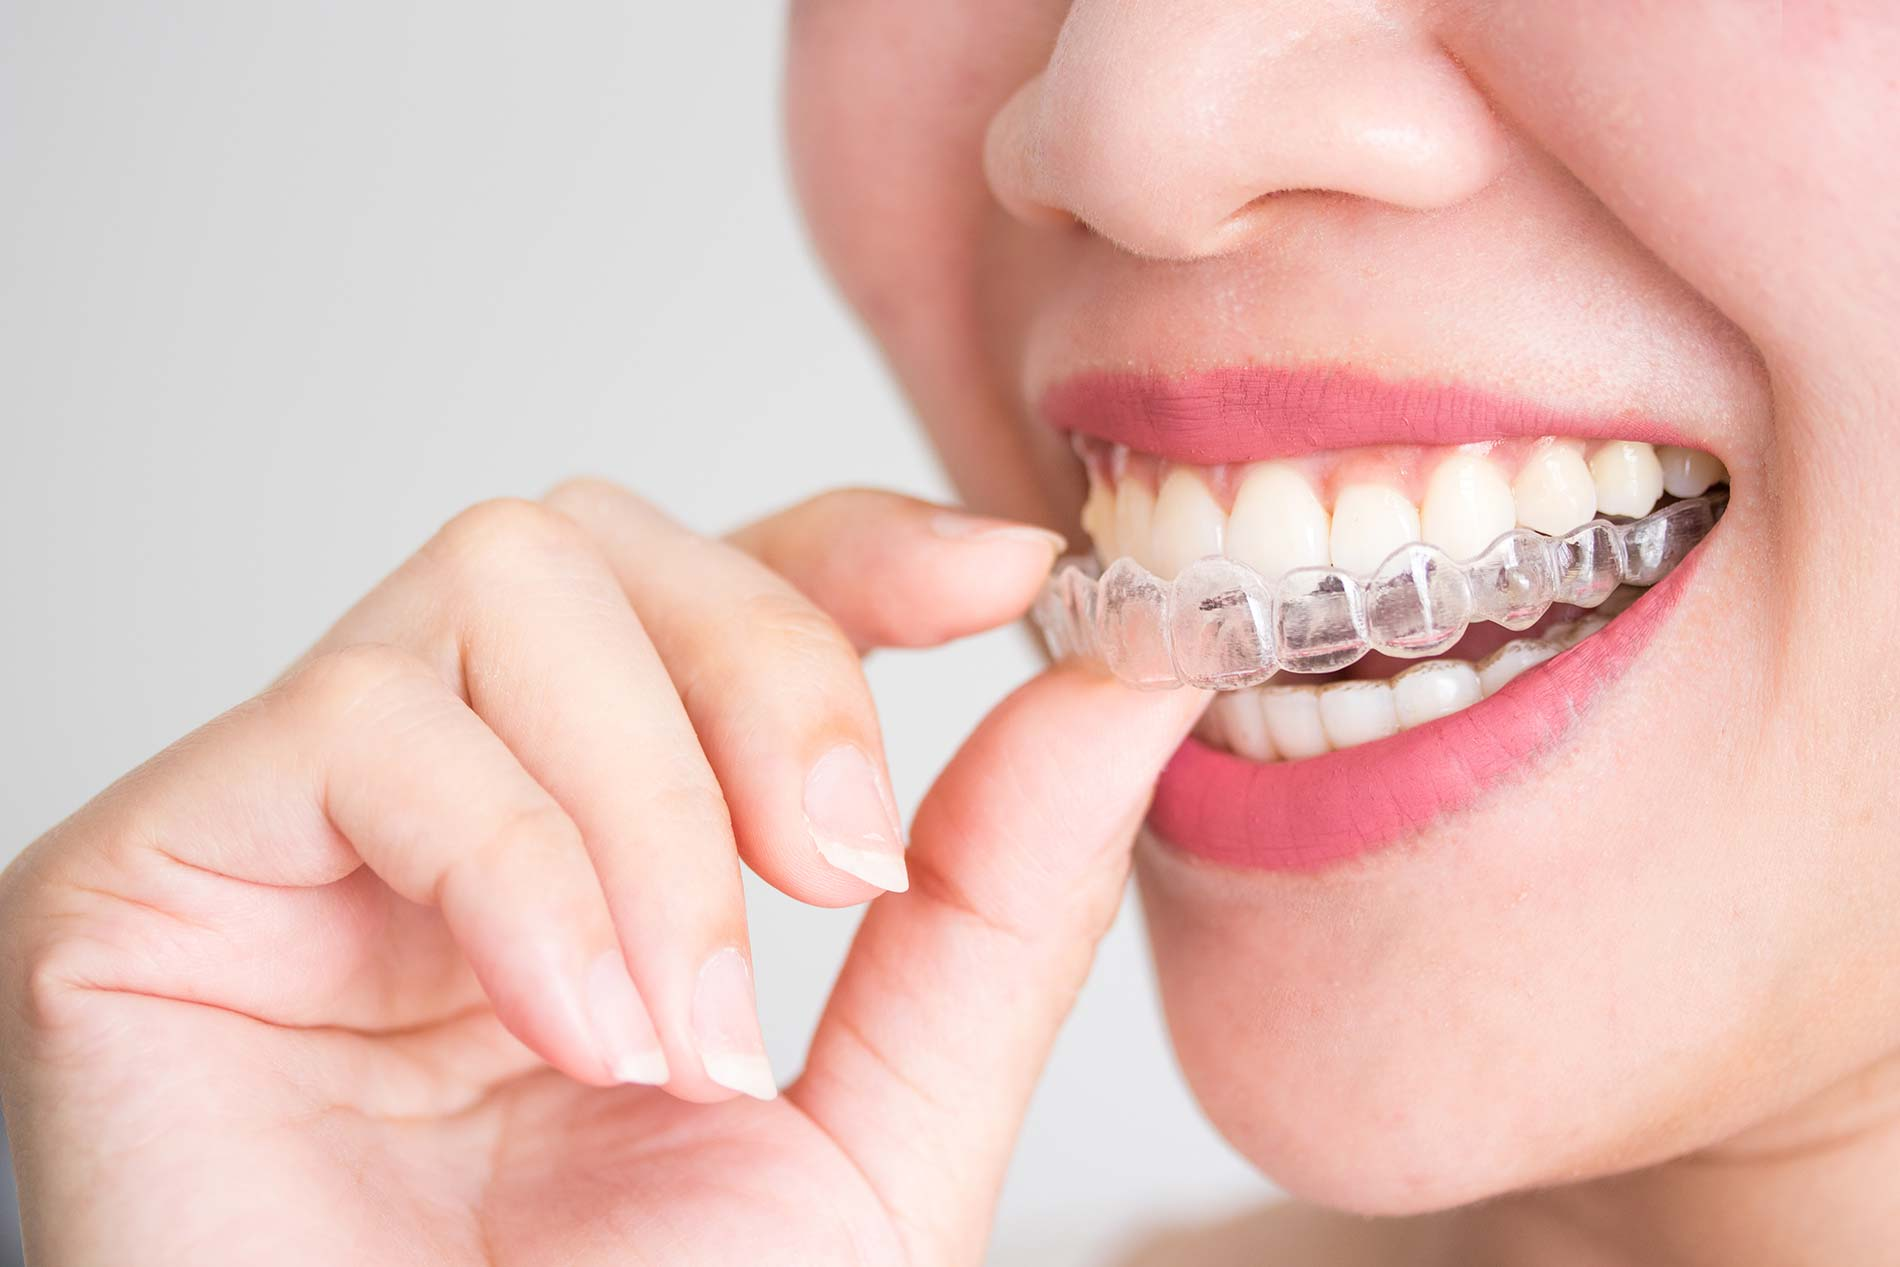 invisalign and teeth straightening